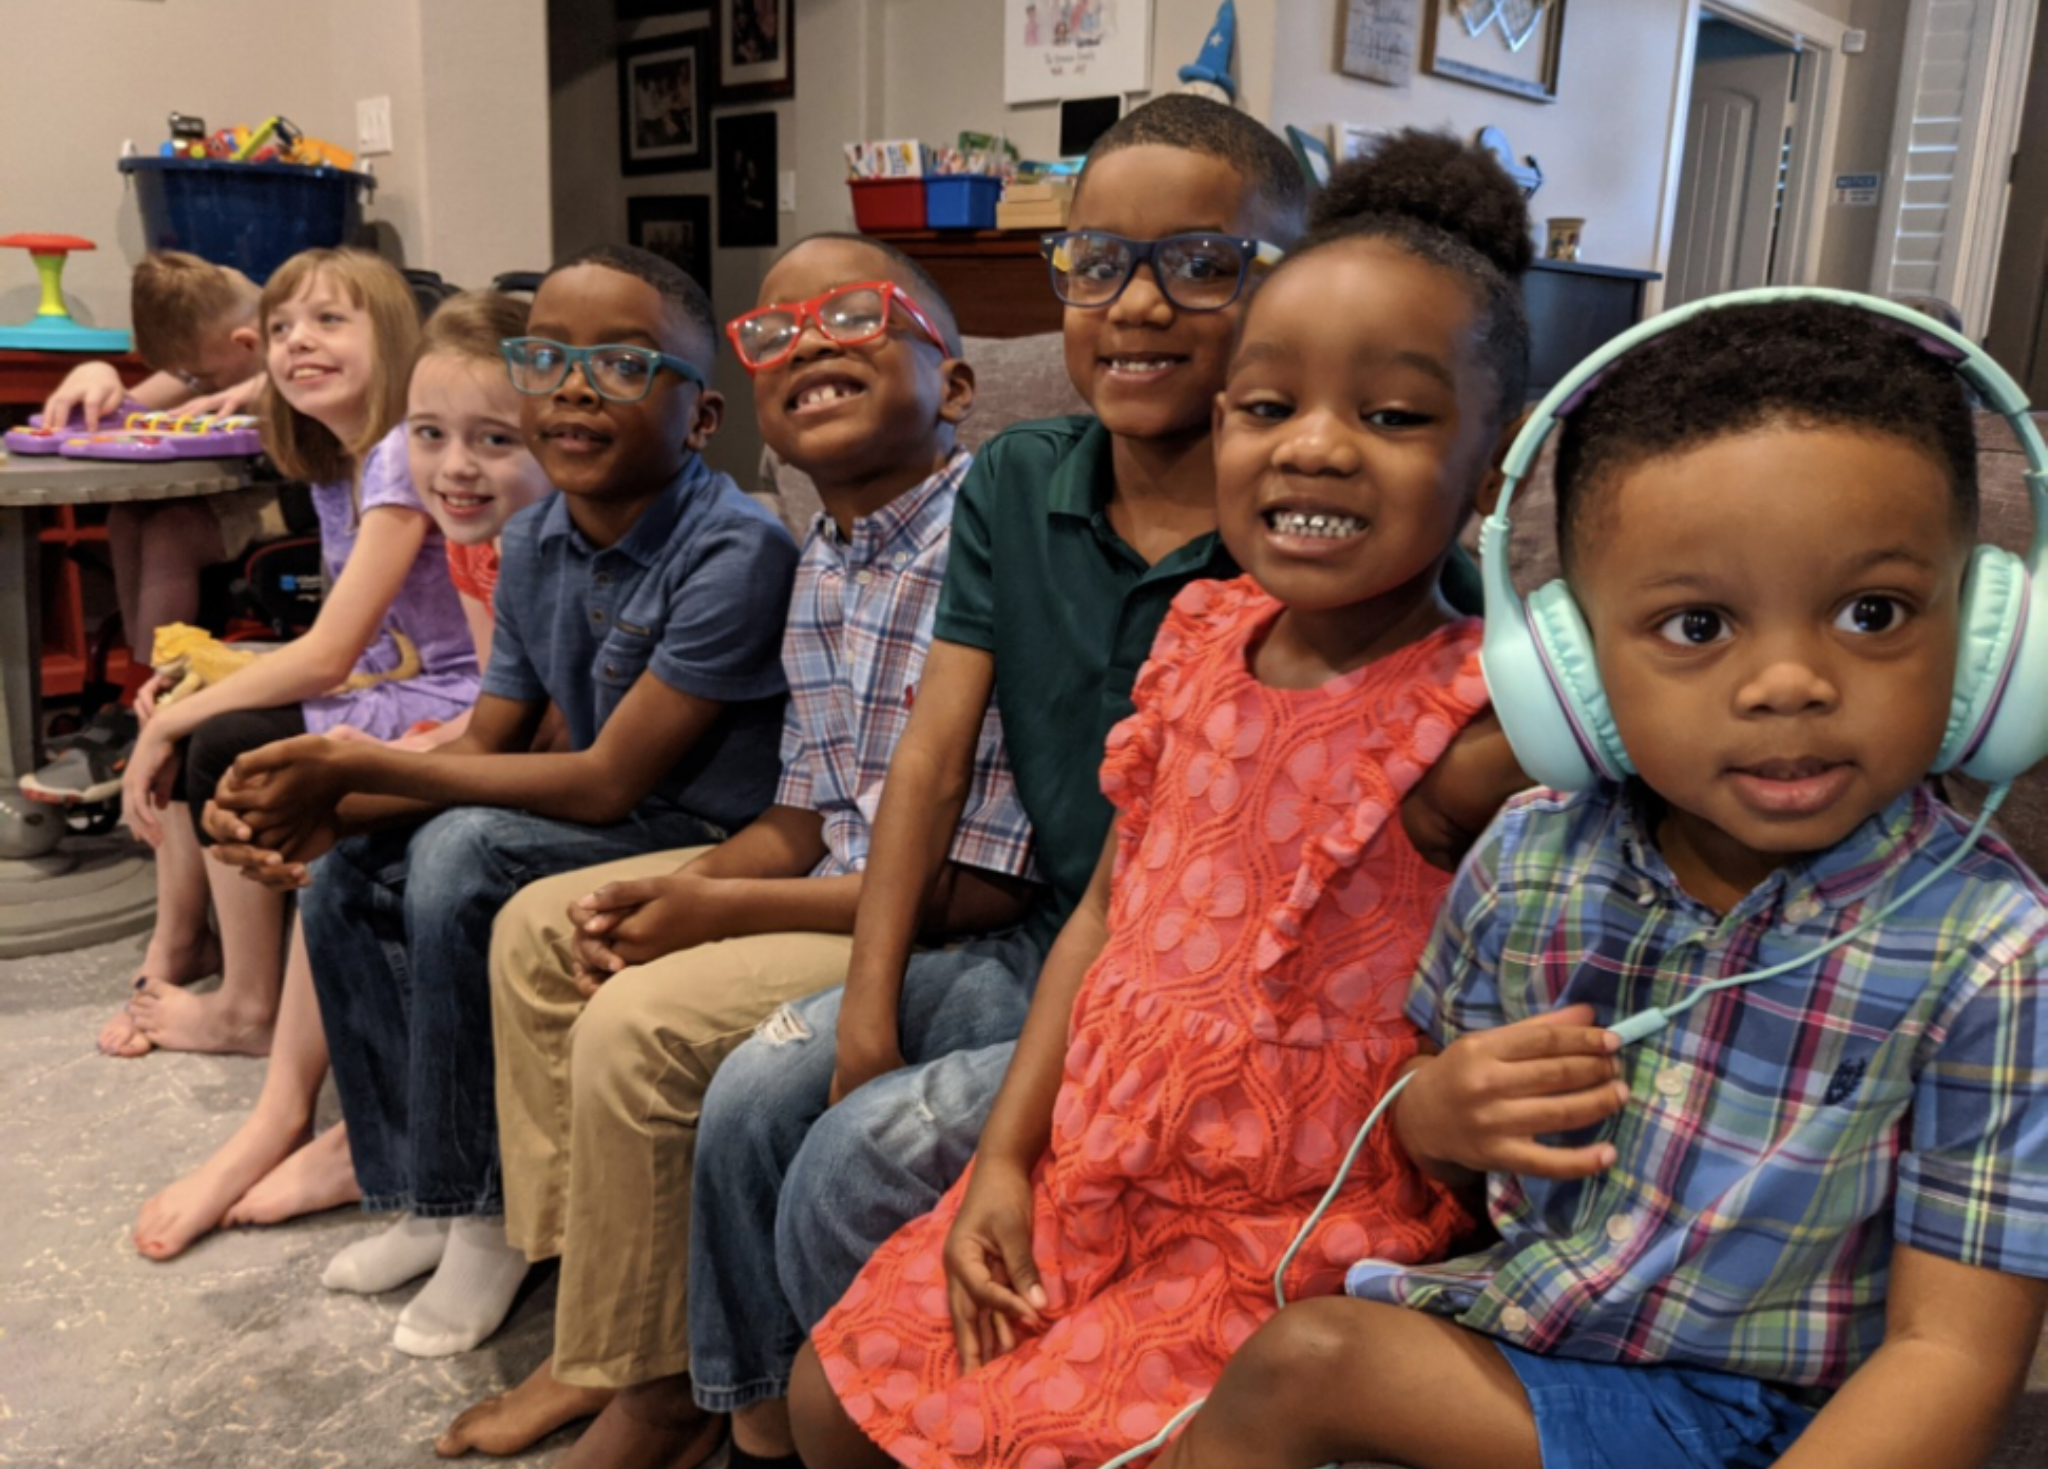 Parents Adopt Five Biological Siblings After Learning They Were Separated In Foster Care